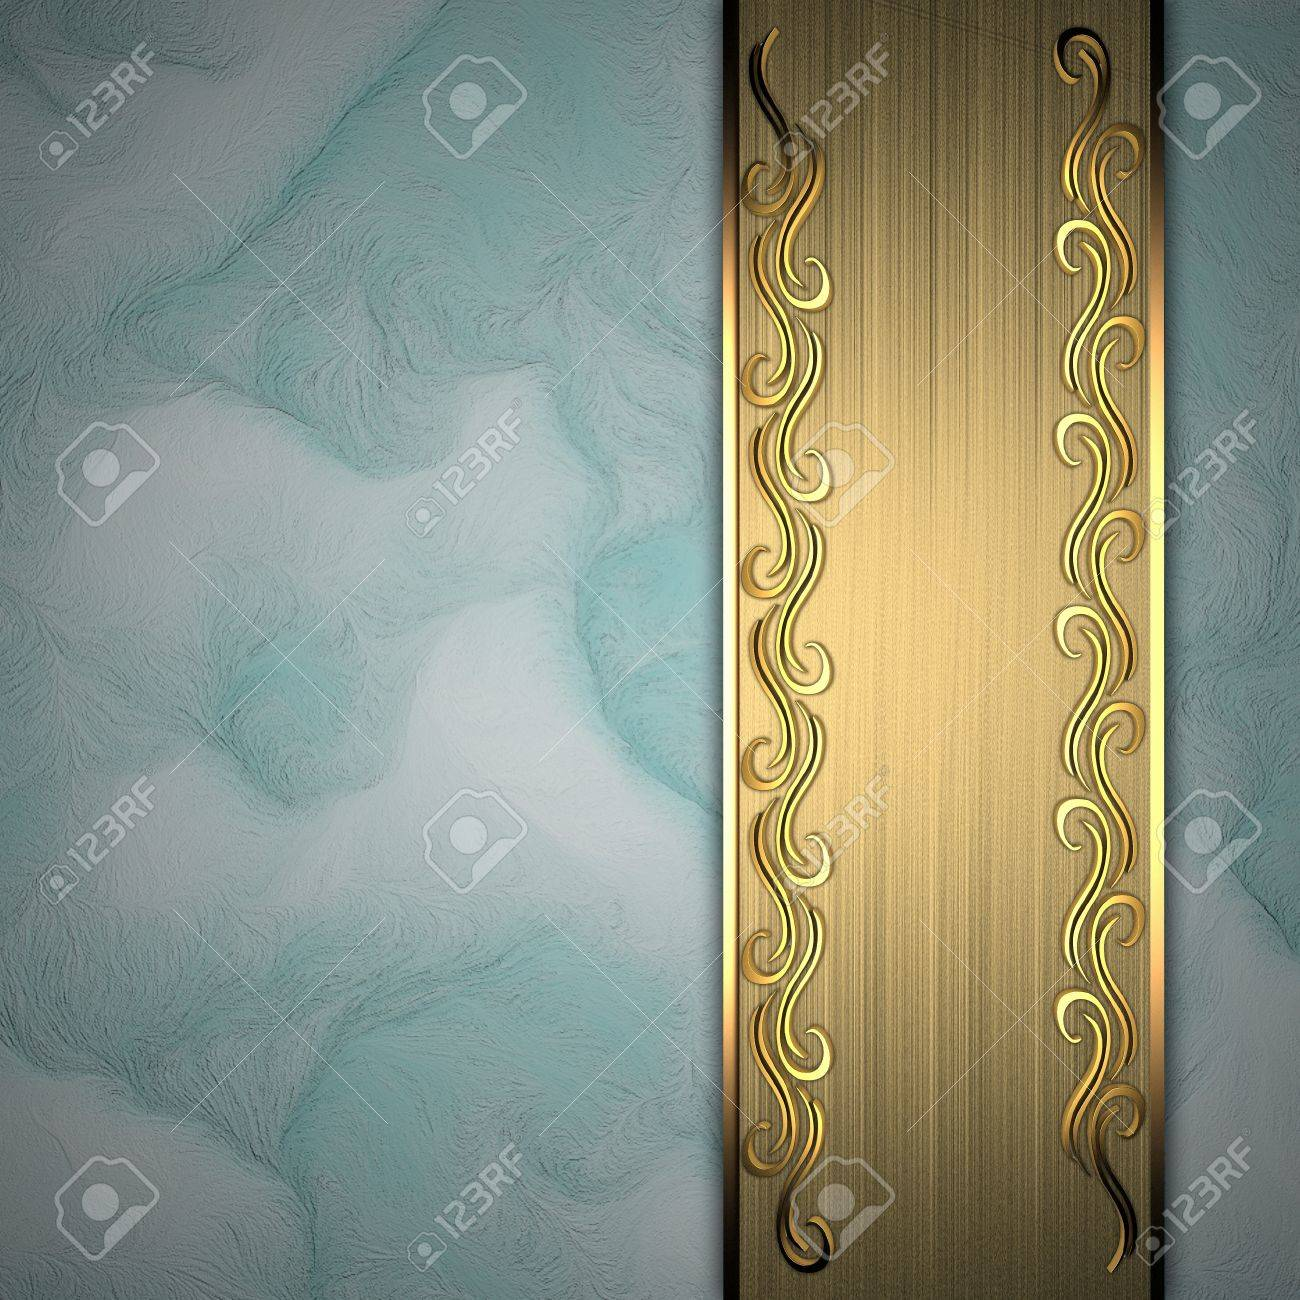 Beautiful pattern on a gold plate on a blue background Stock Photo - 14124454